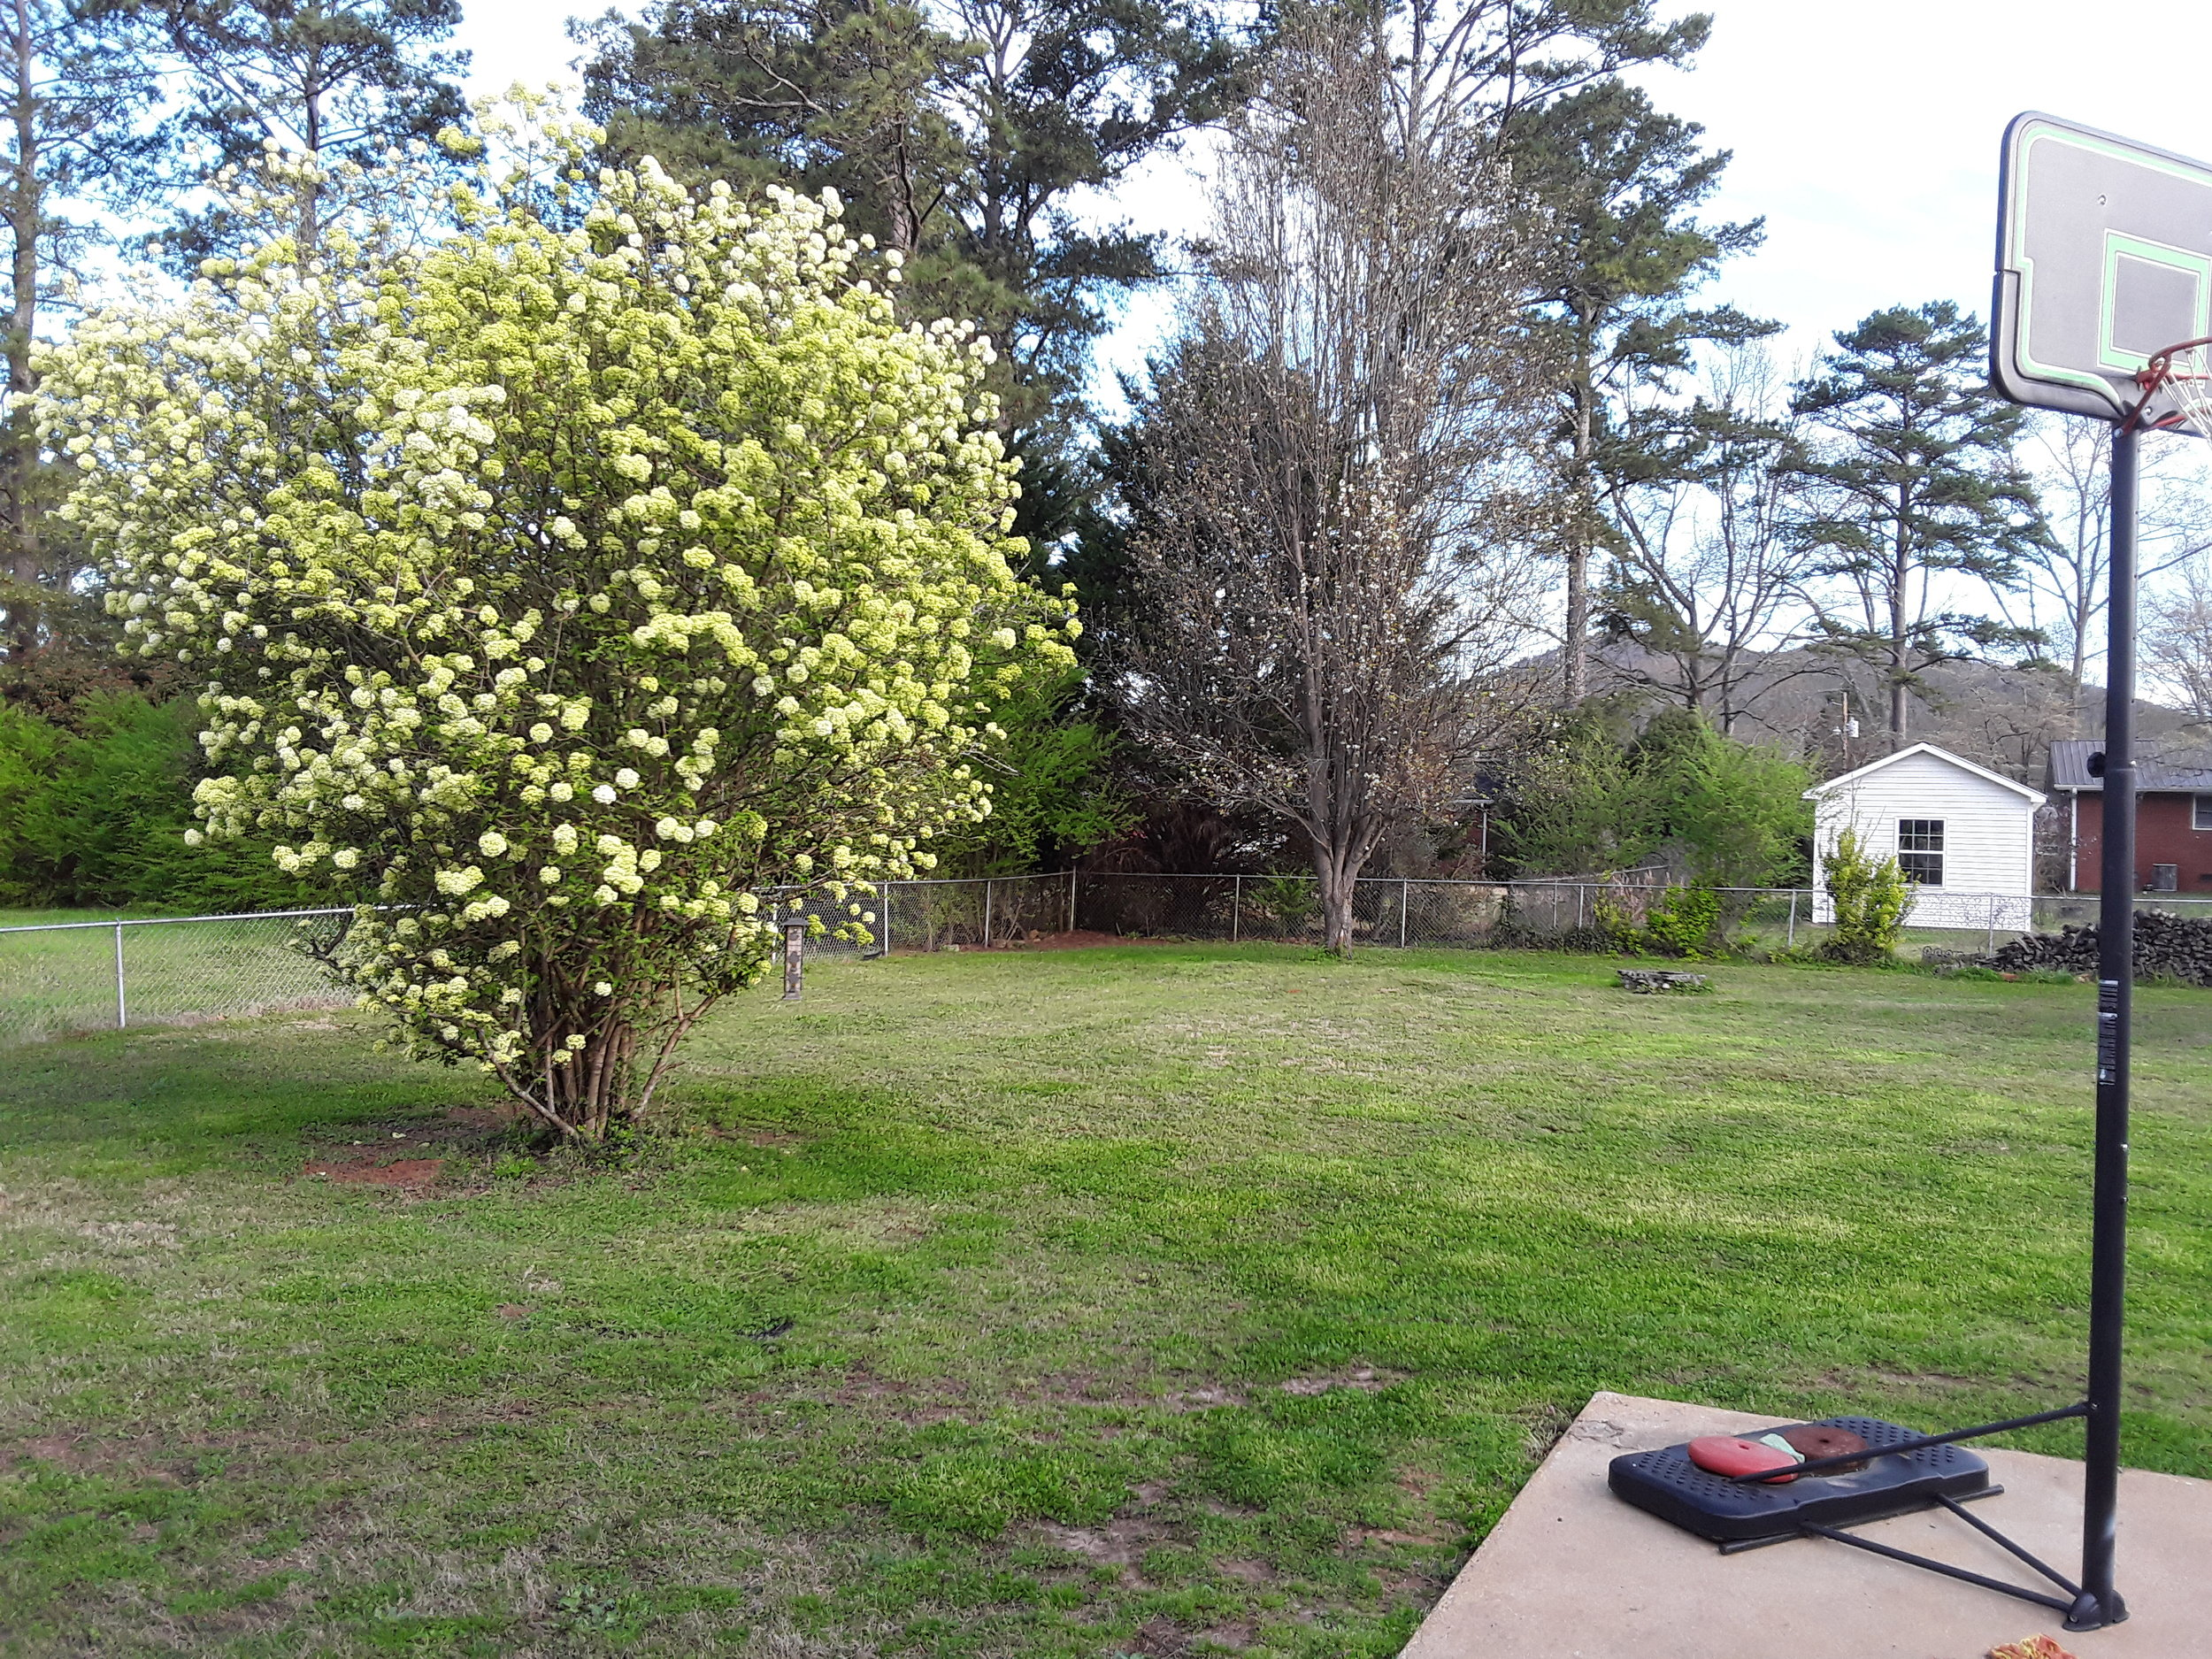 Between the grass Lou cut and our snowball bush, our yard is looking ready for spring!